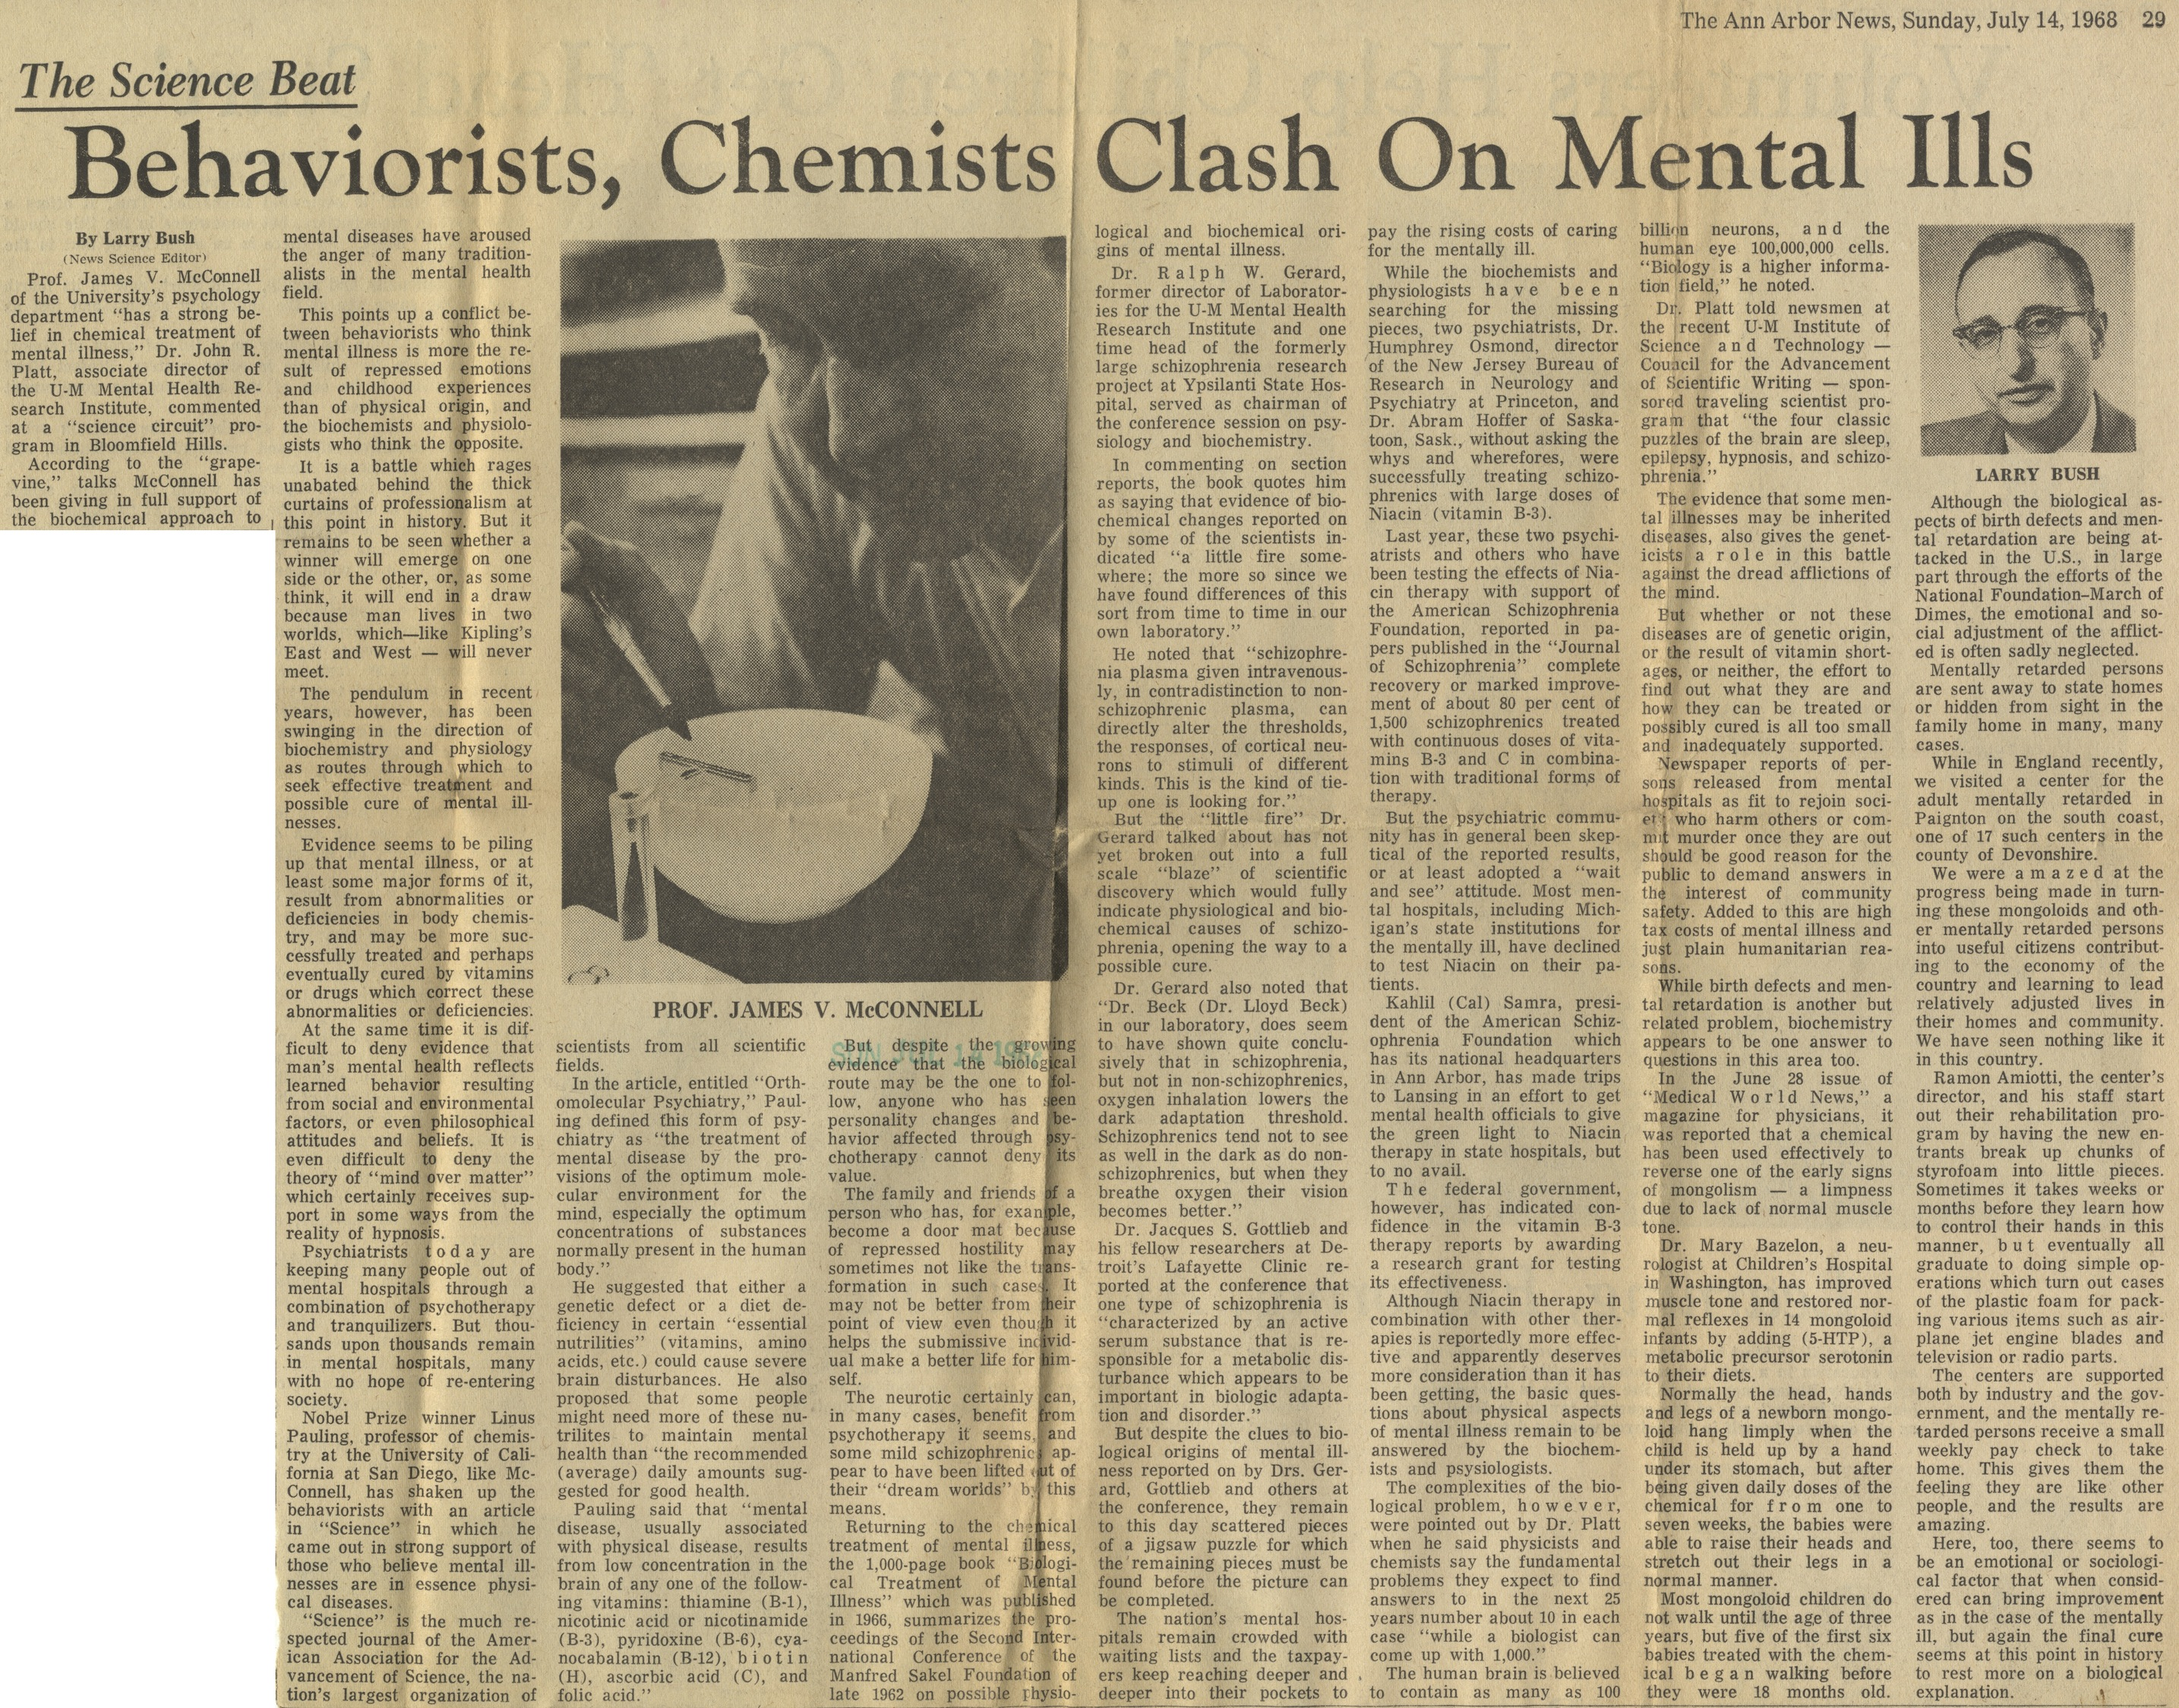 Behaviorists, Chemists Clash On Mental Ills image